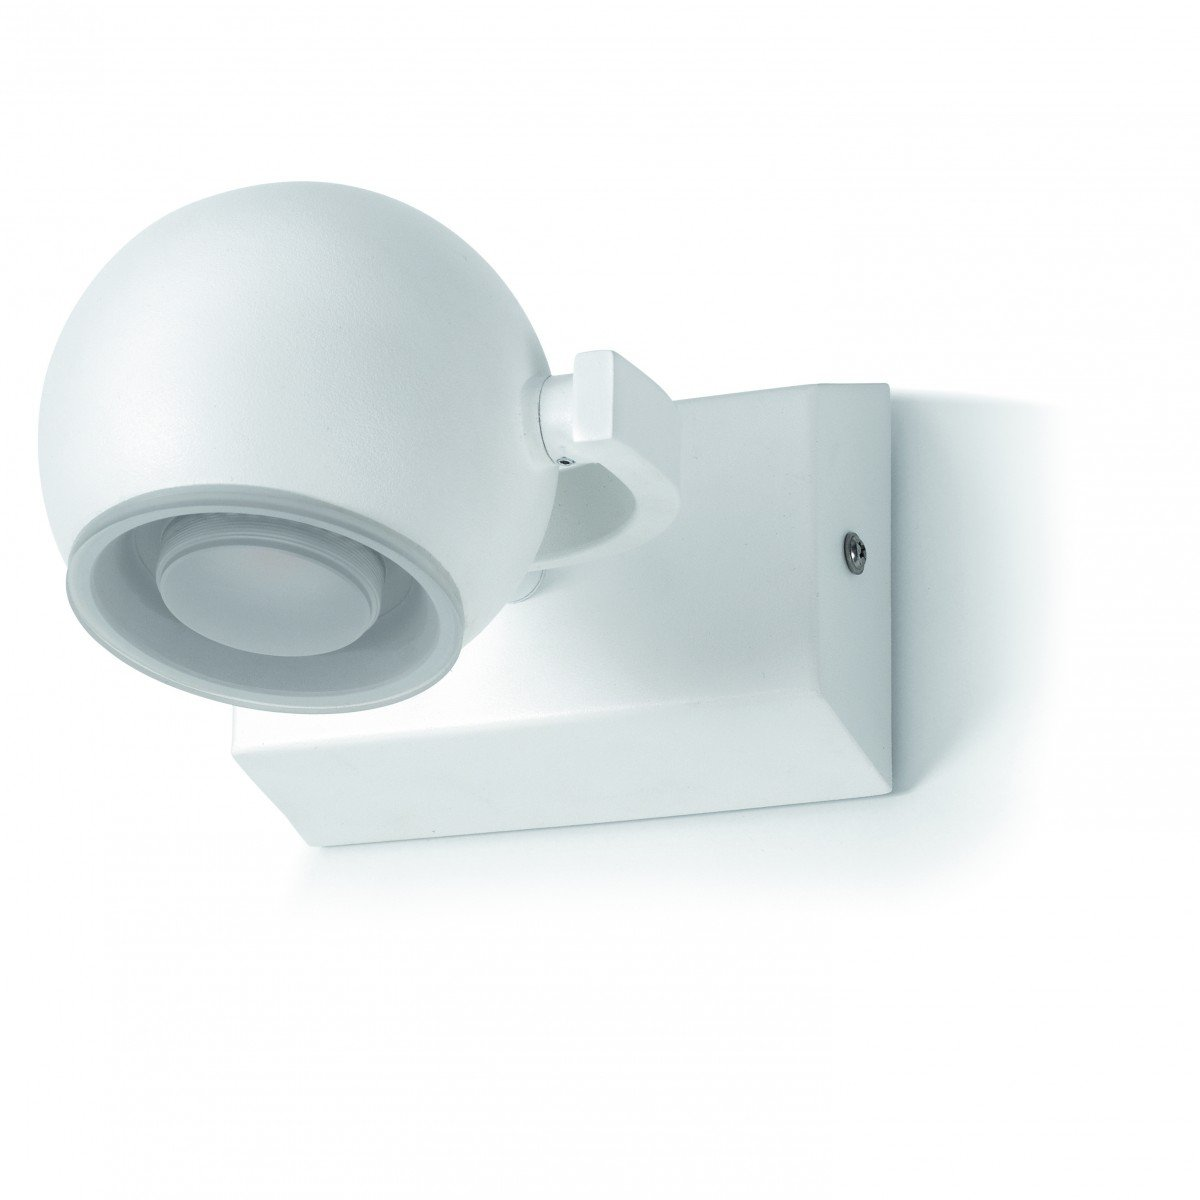 Aplique Baño Exo Lighting Moon Aplique De Pared Baño Blanco Led 5w Apliques De Pared LÁmparas Exo Lighting